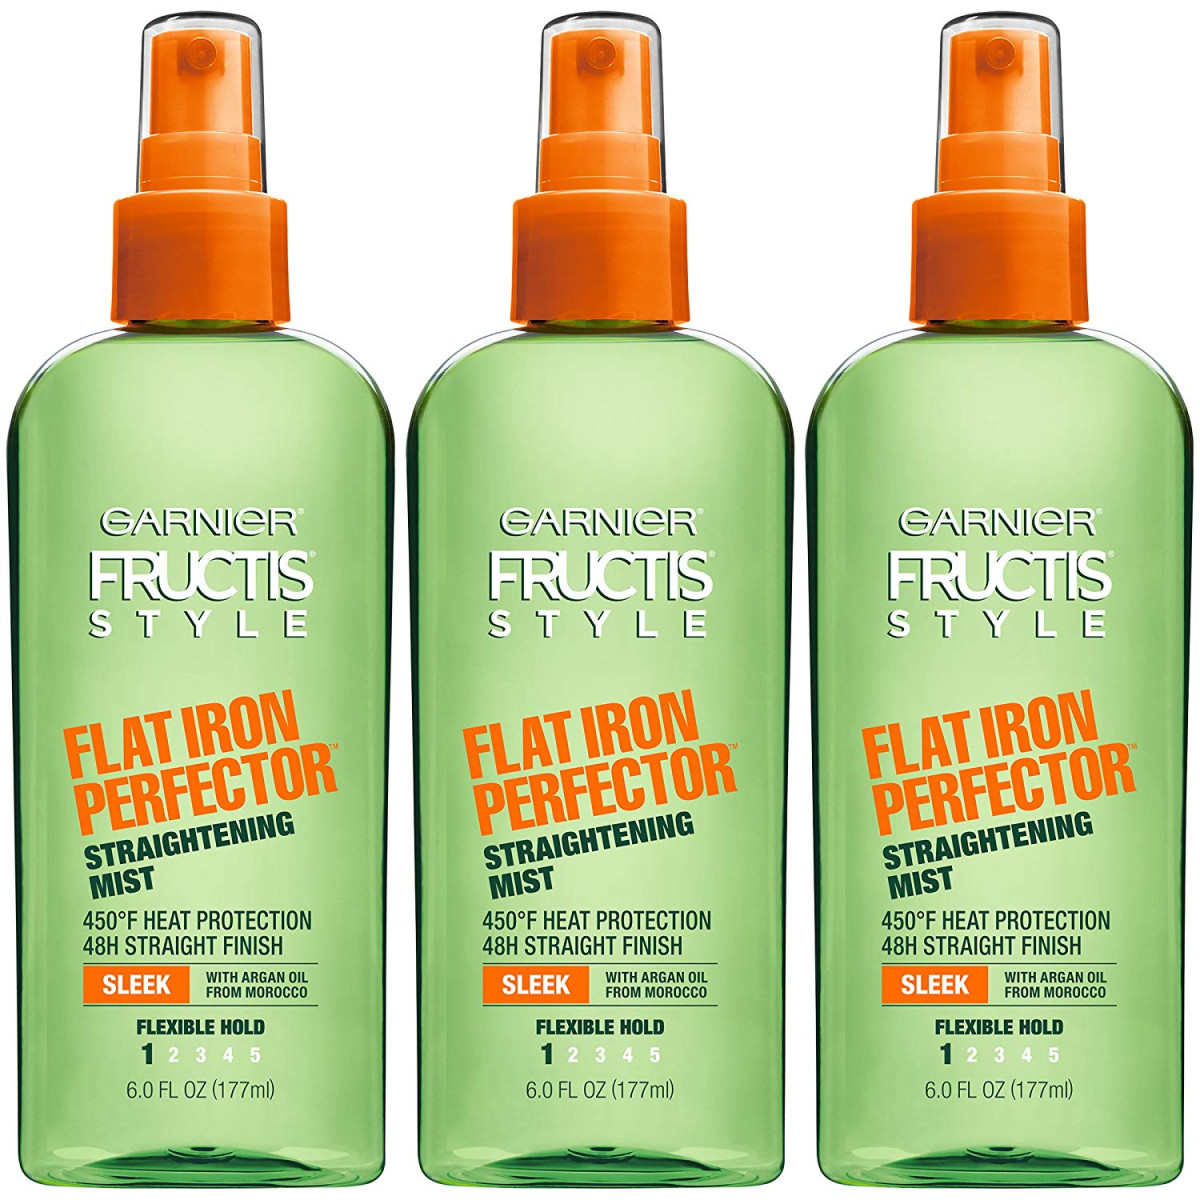 Garnier Hair Care Fructis Style Flat Iron Perfector Straightening Mist, 3 Count